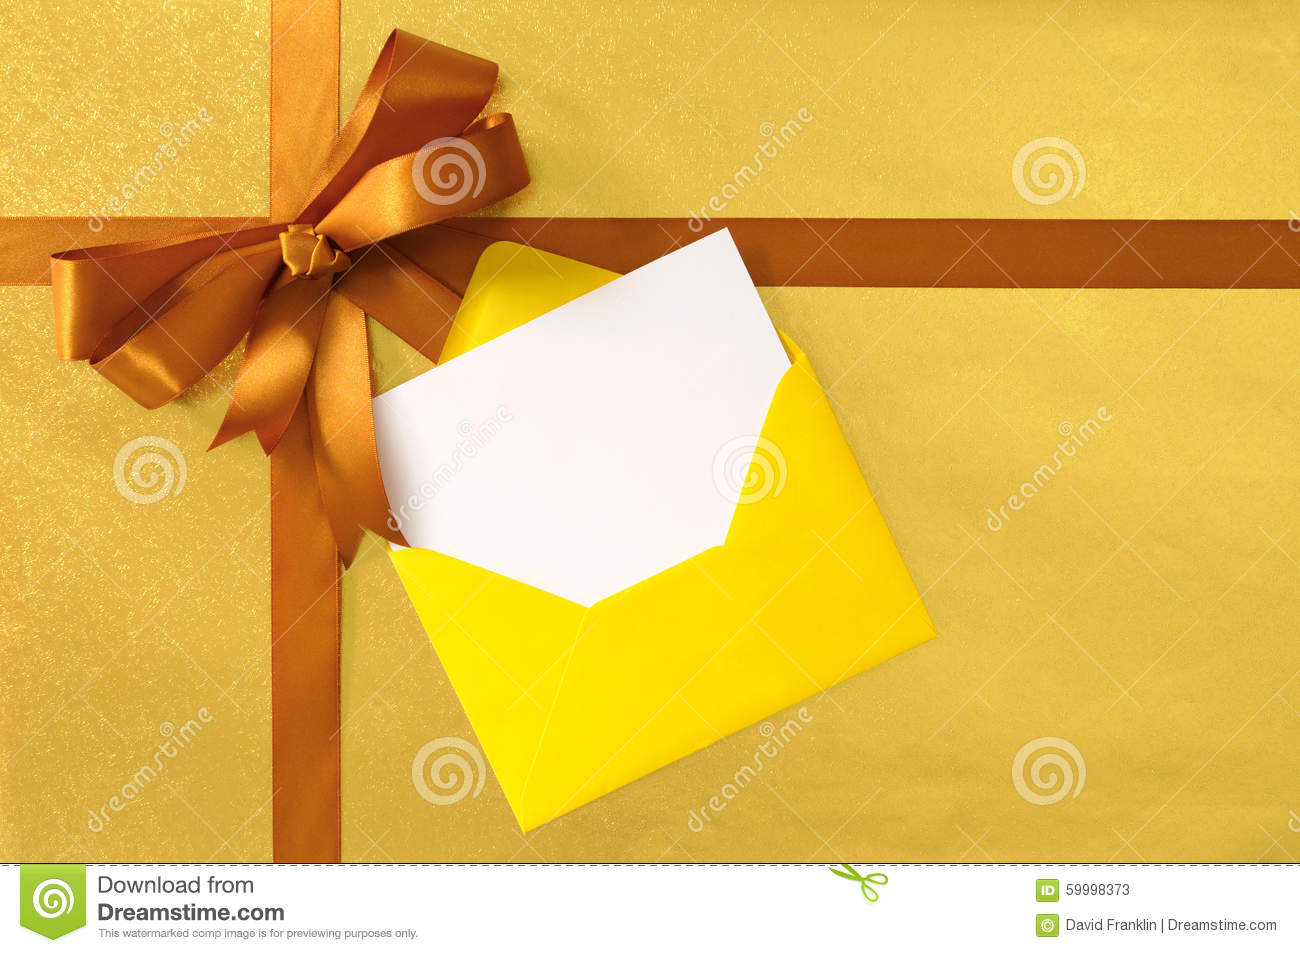 Christmas Or Birthday Card Gold Gift Ribbon Bow Plain Background Wrapping Paper